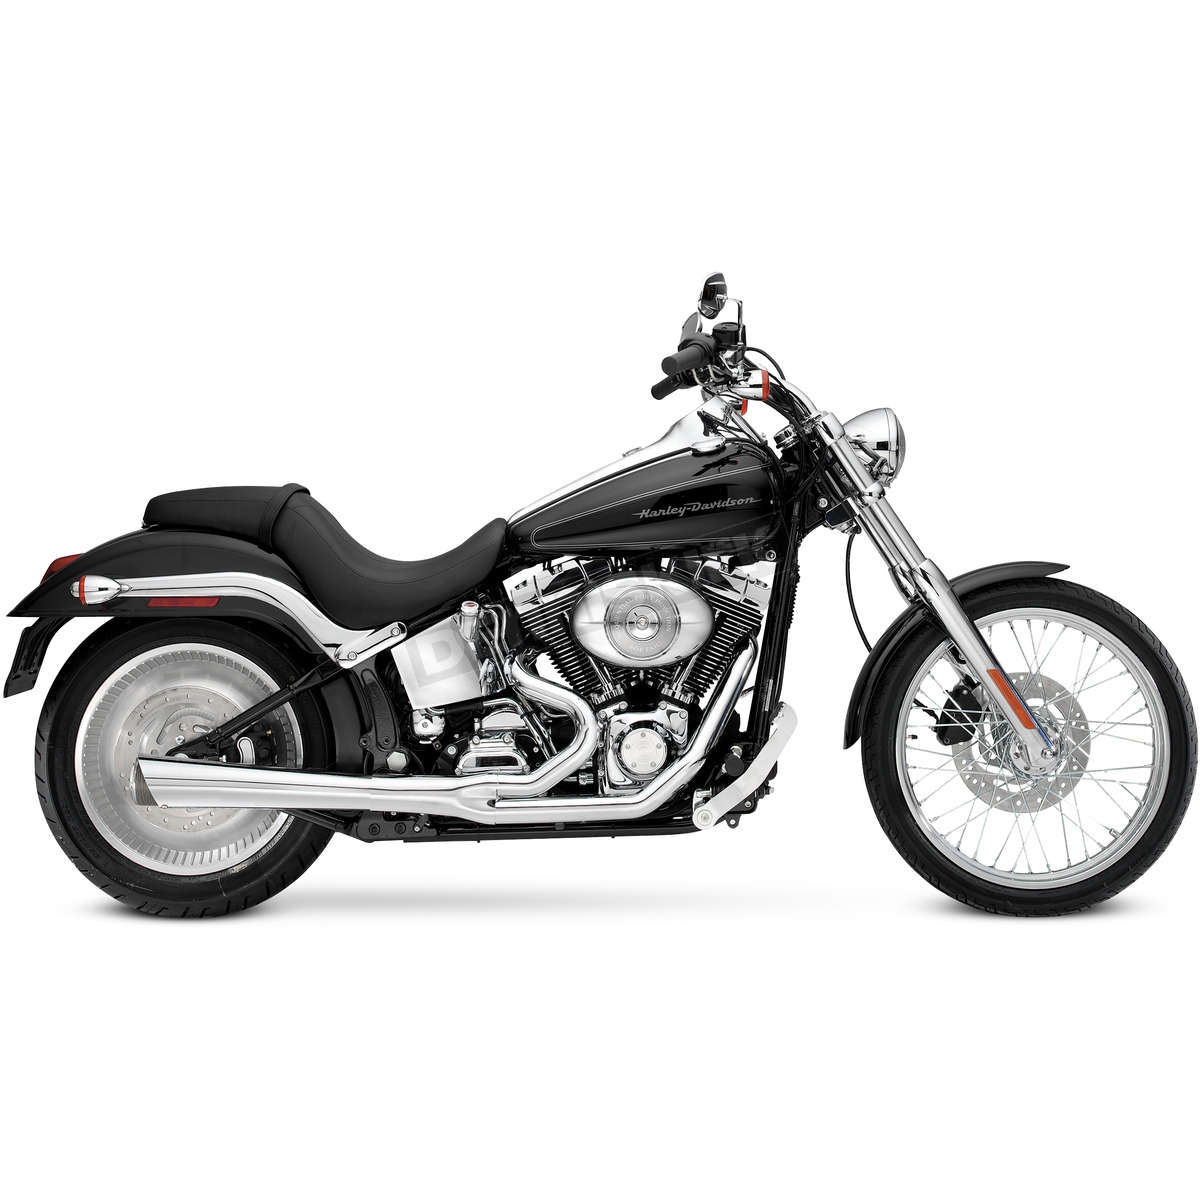 Supertrapp Chrome 2 Into 1 Supermeg Exhaust System 828 71454 Harley Davidson Motorcycle Dennis Kirk